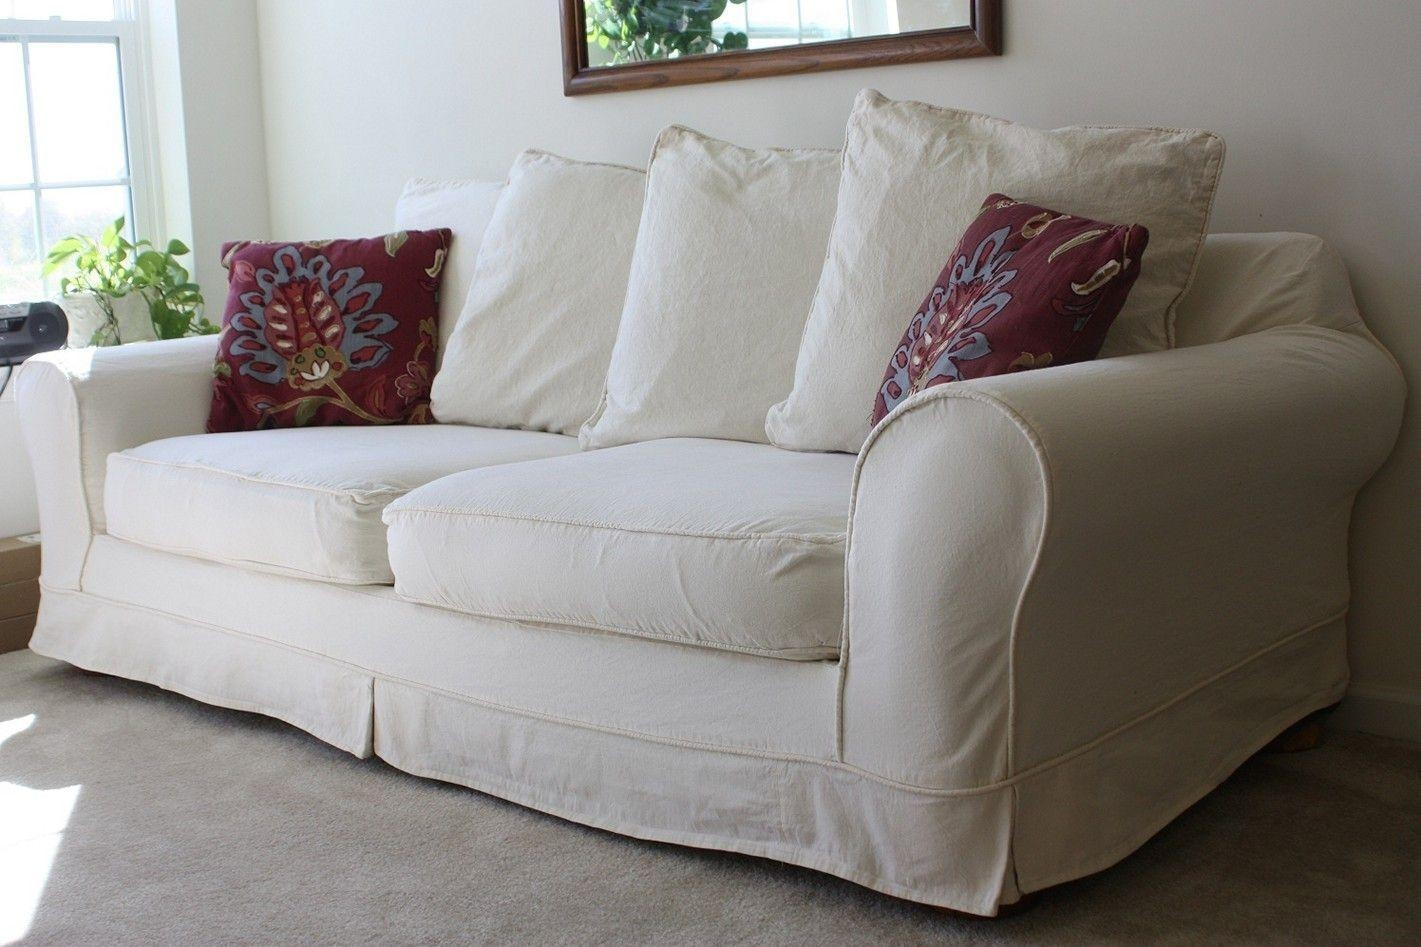 Furniture Home: Slipcover Sofa Shabby Chic Sofa Slipcovers Sure Intended For Shabby Chic Sofa Slipcovers (Image 13 of 20)